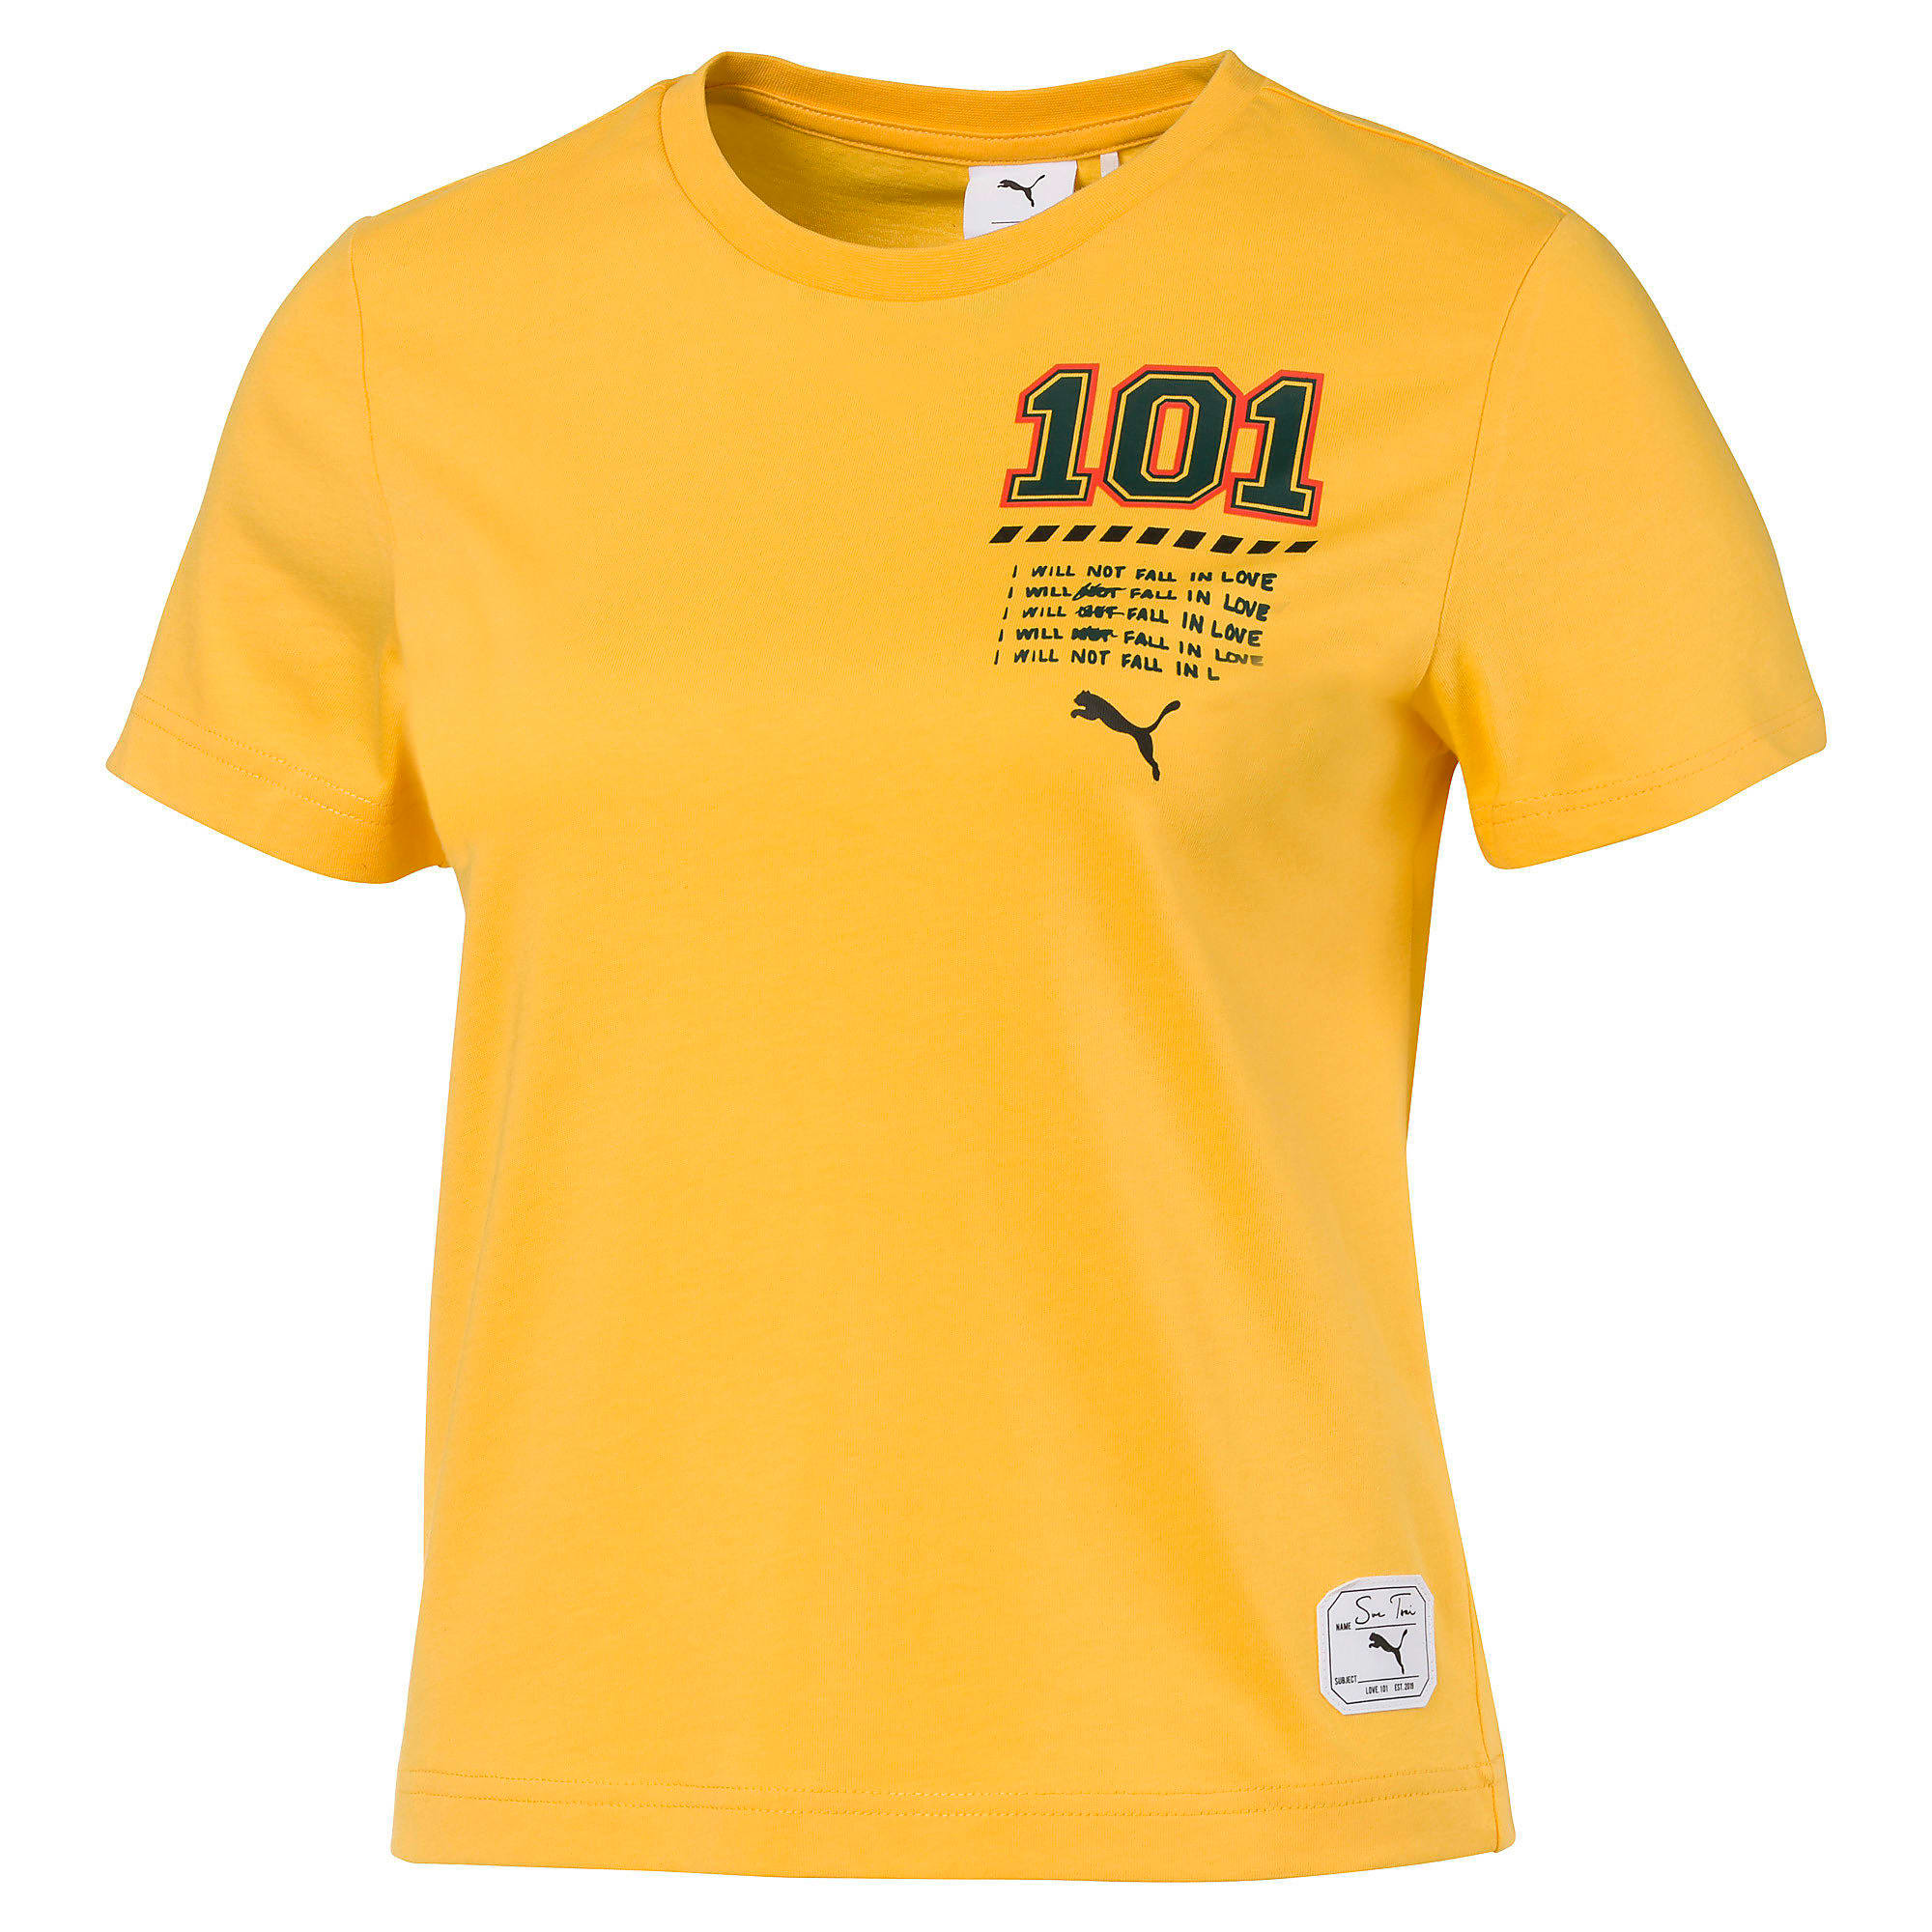 Thumbnail 1 of PUMA x SUE TSAI ウィメンズ Tシャツ, Daffodil, medium-JPN